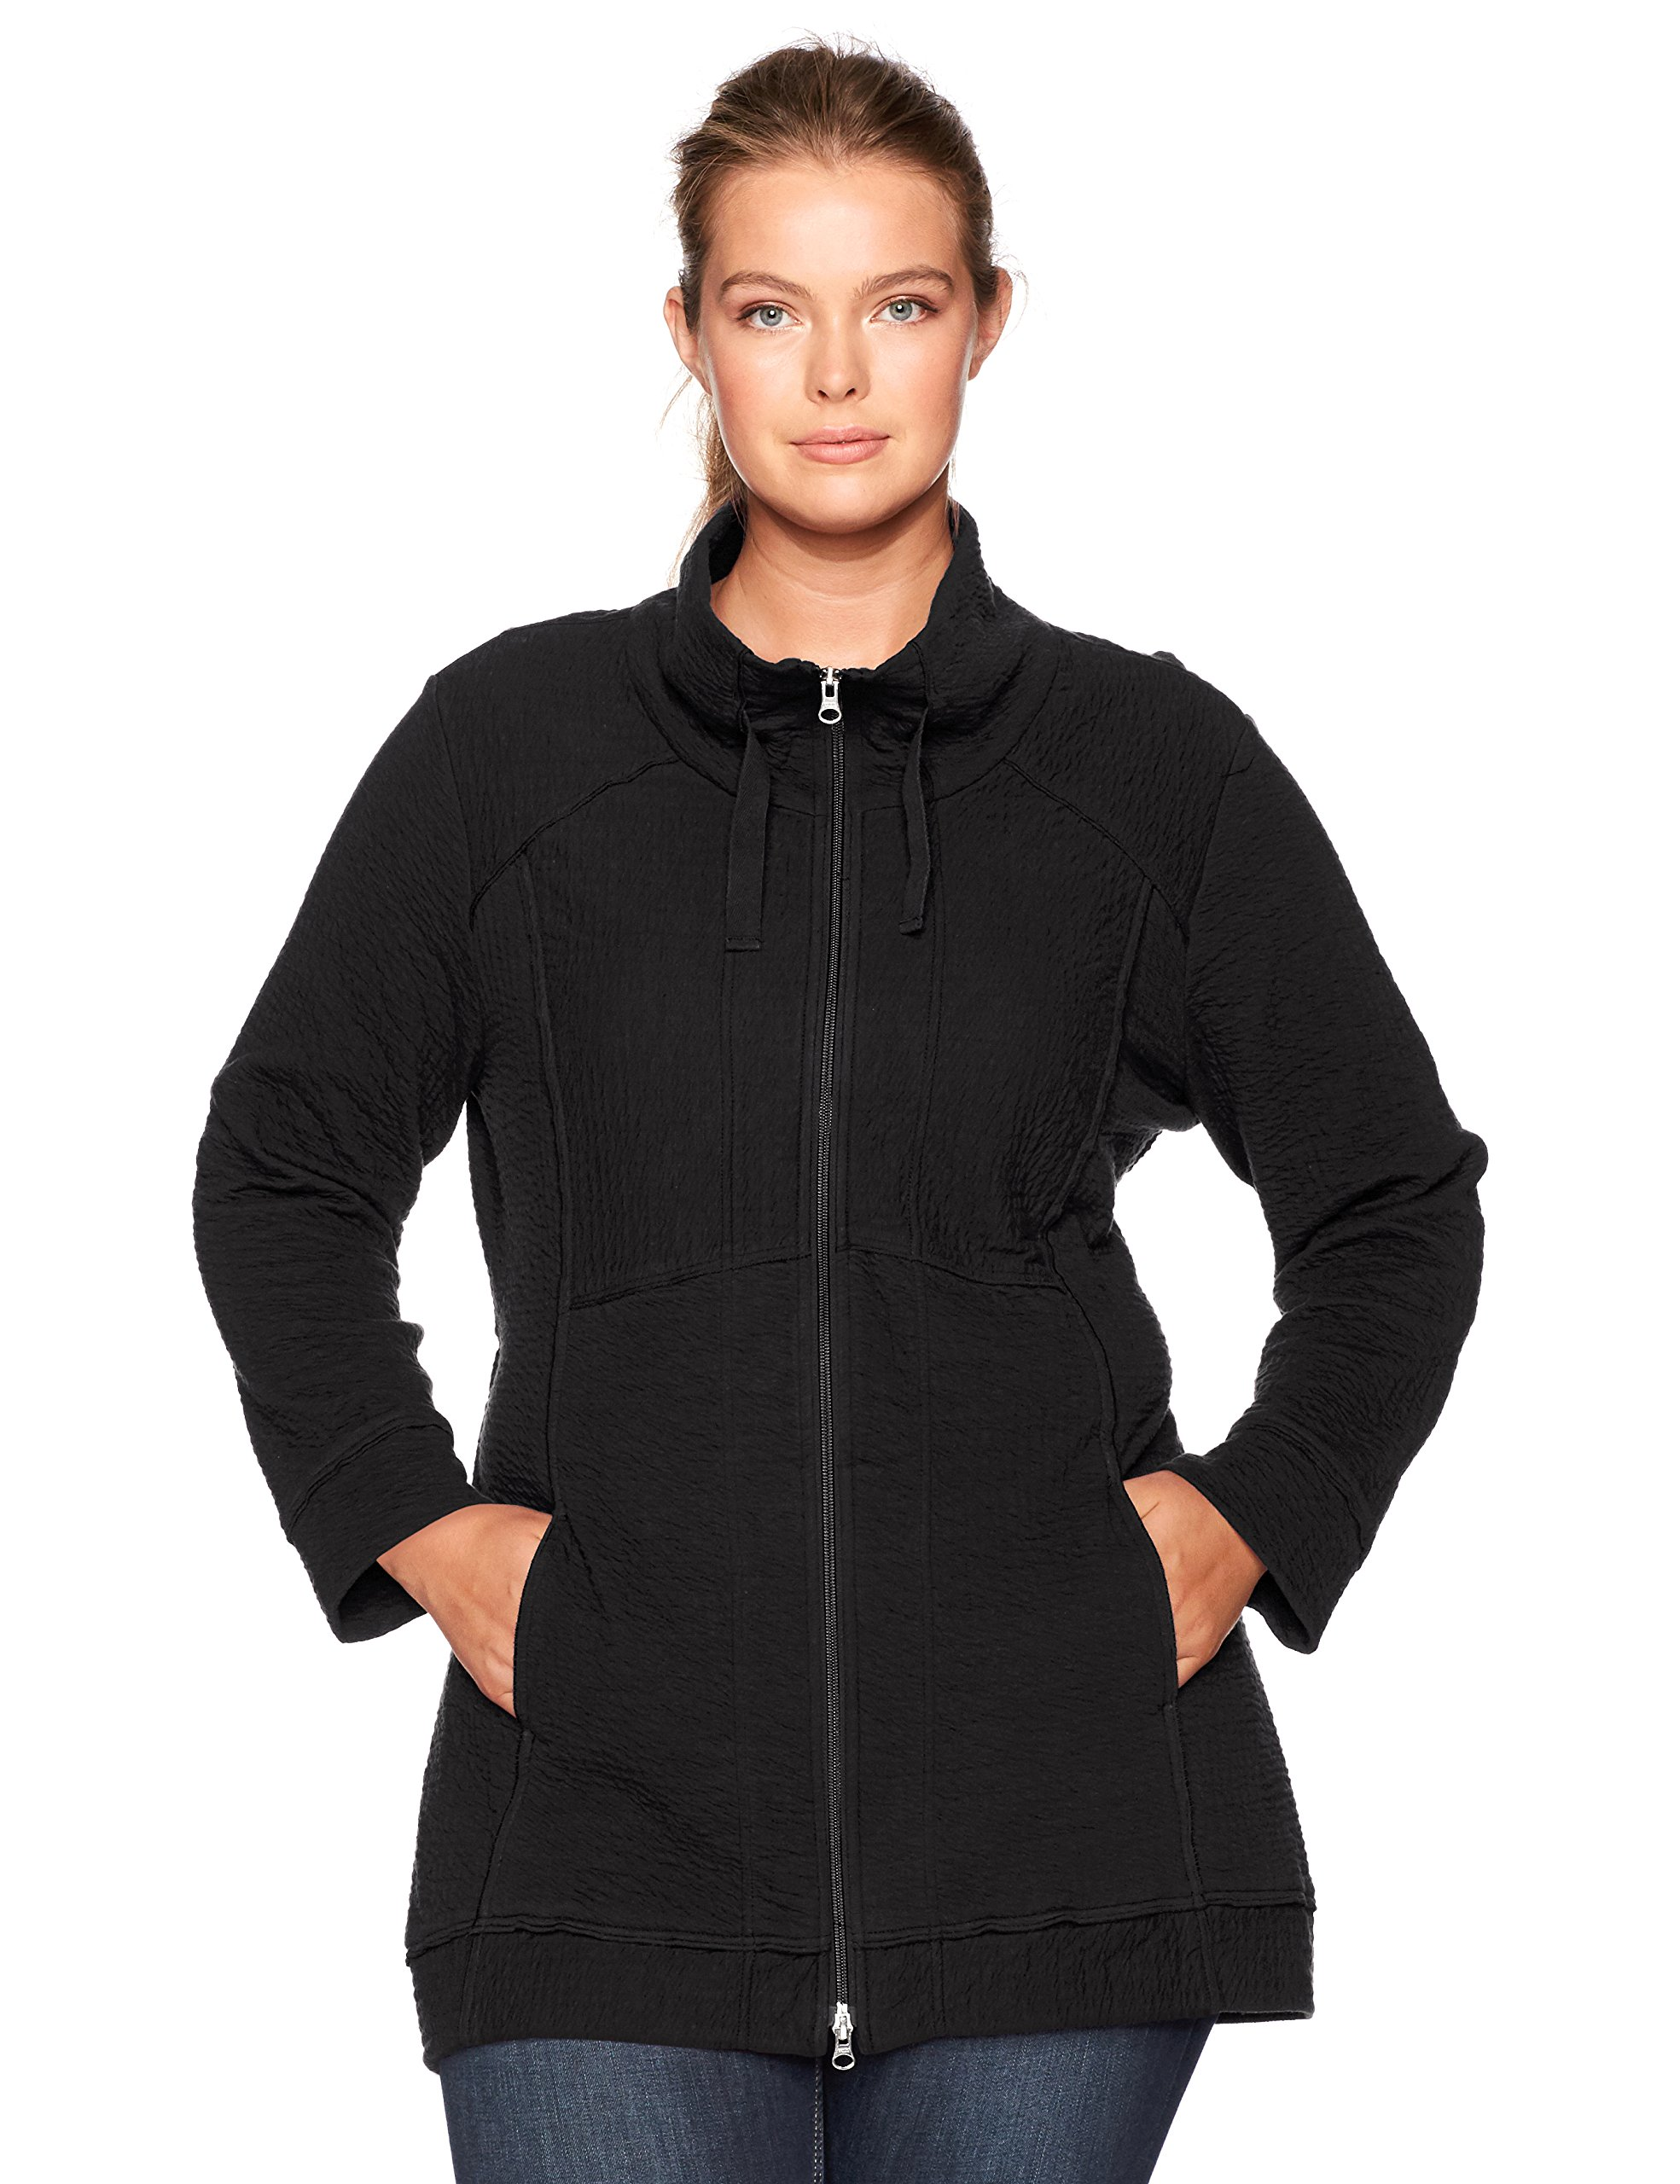 Neon Buddha Women's Plus Size Fulton Jacket, Black, 1X